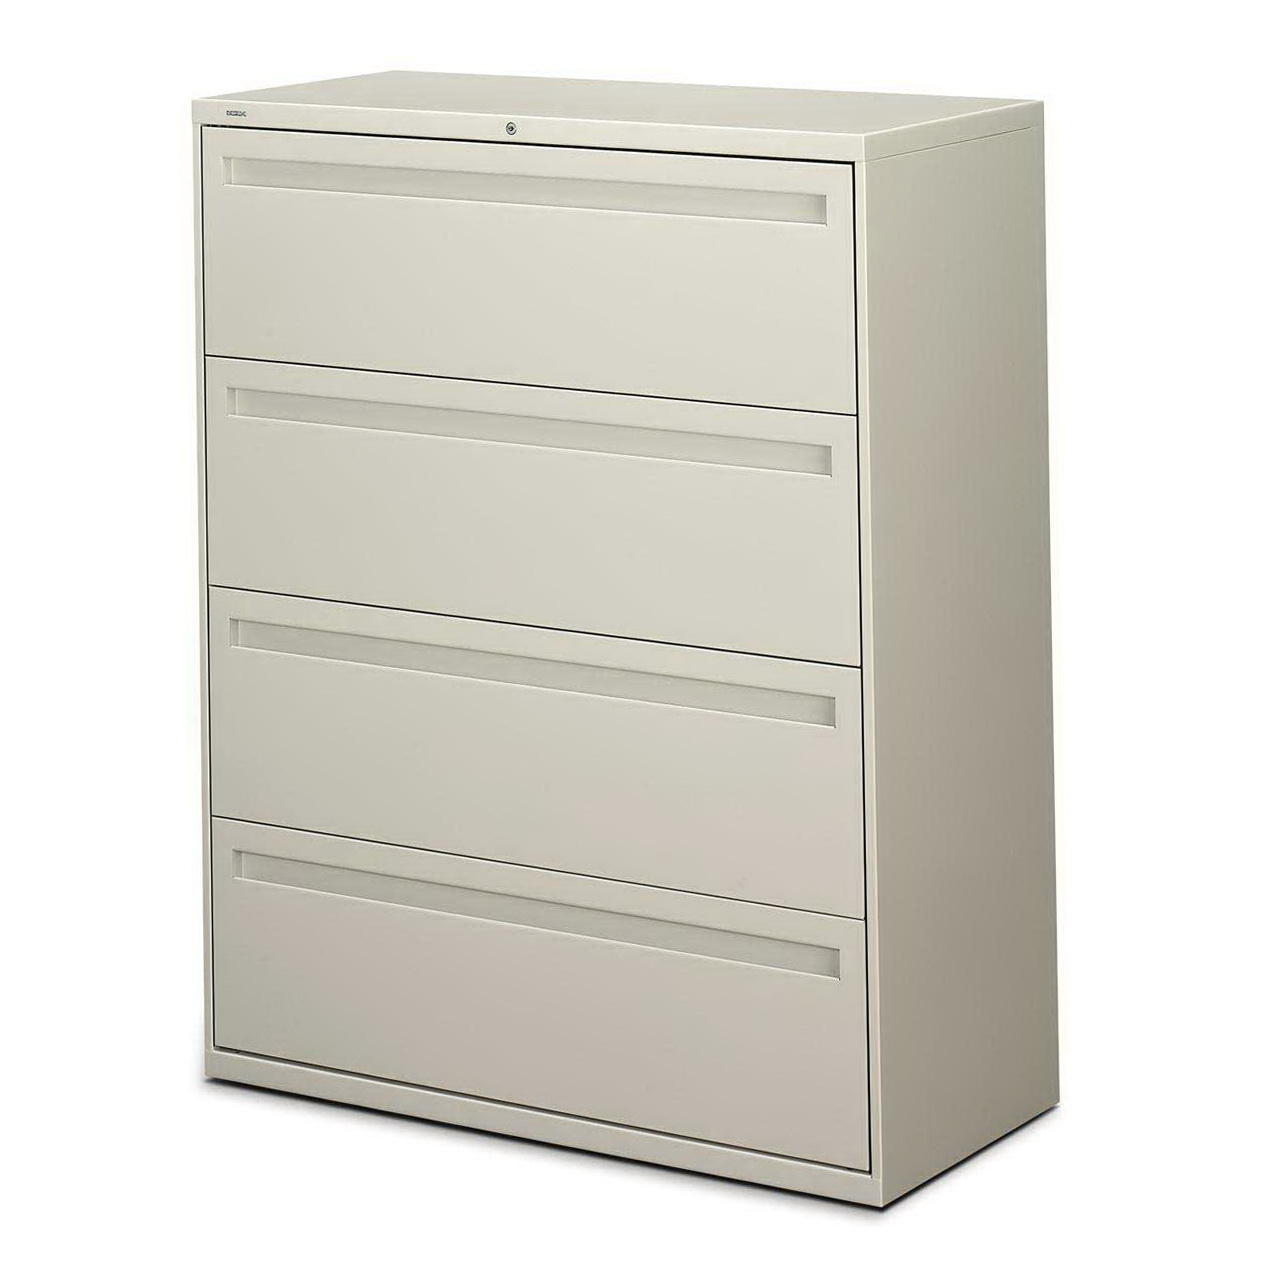 Fireproof File Cabinet Legal Size